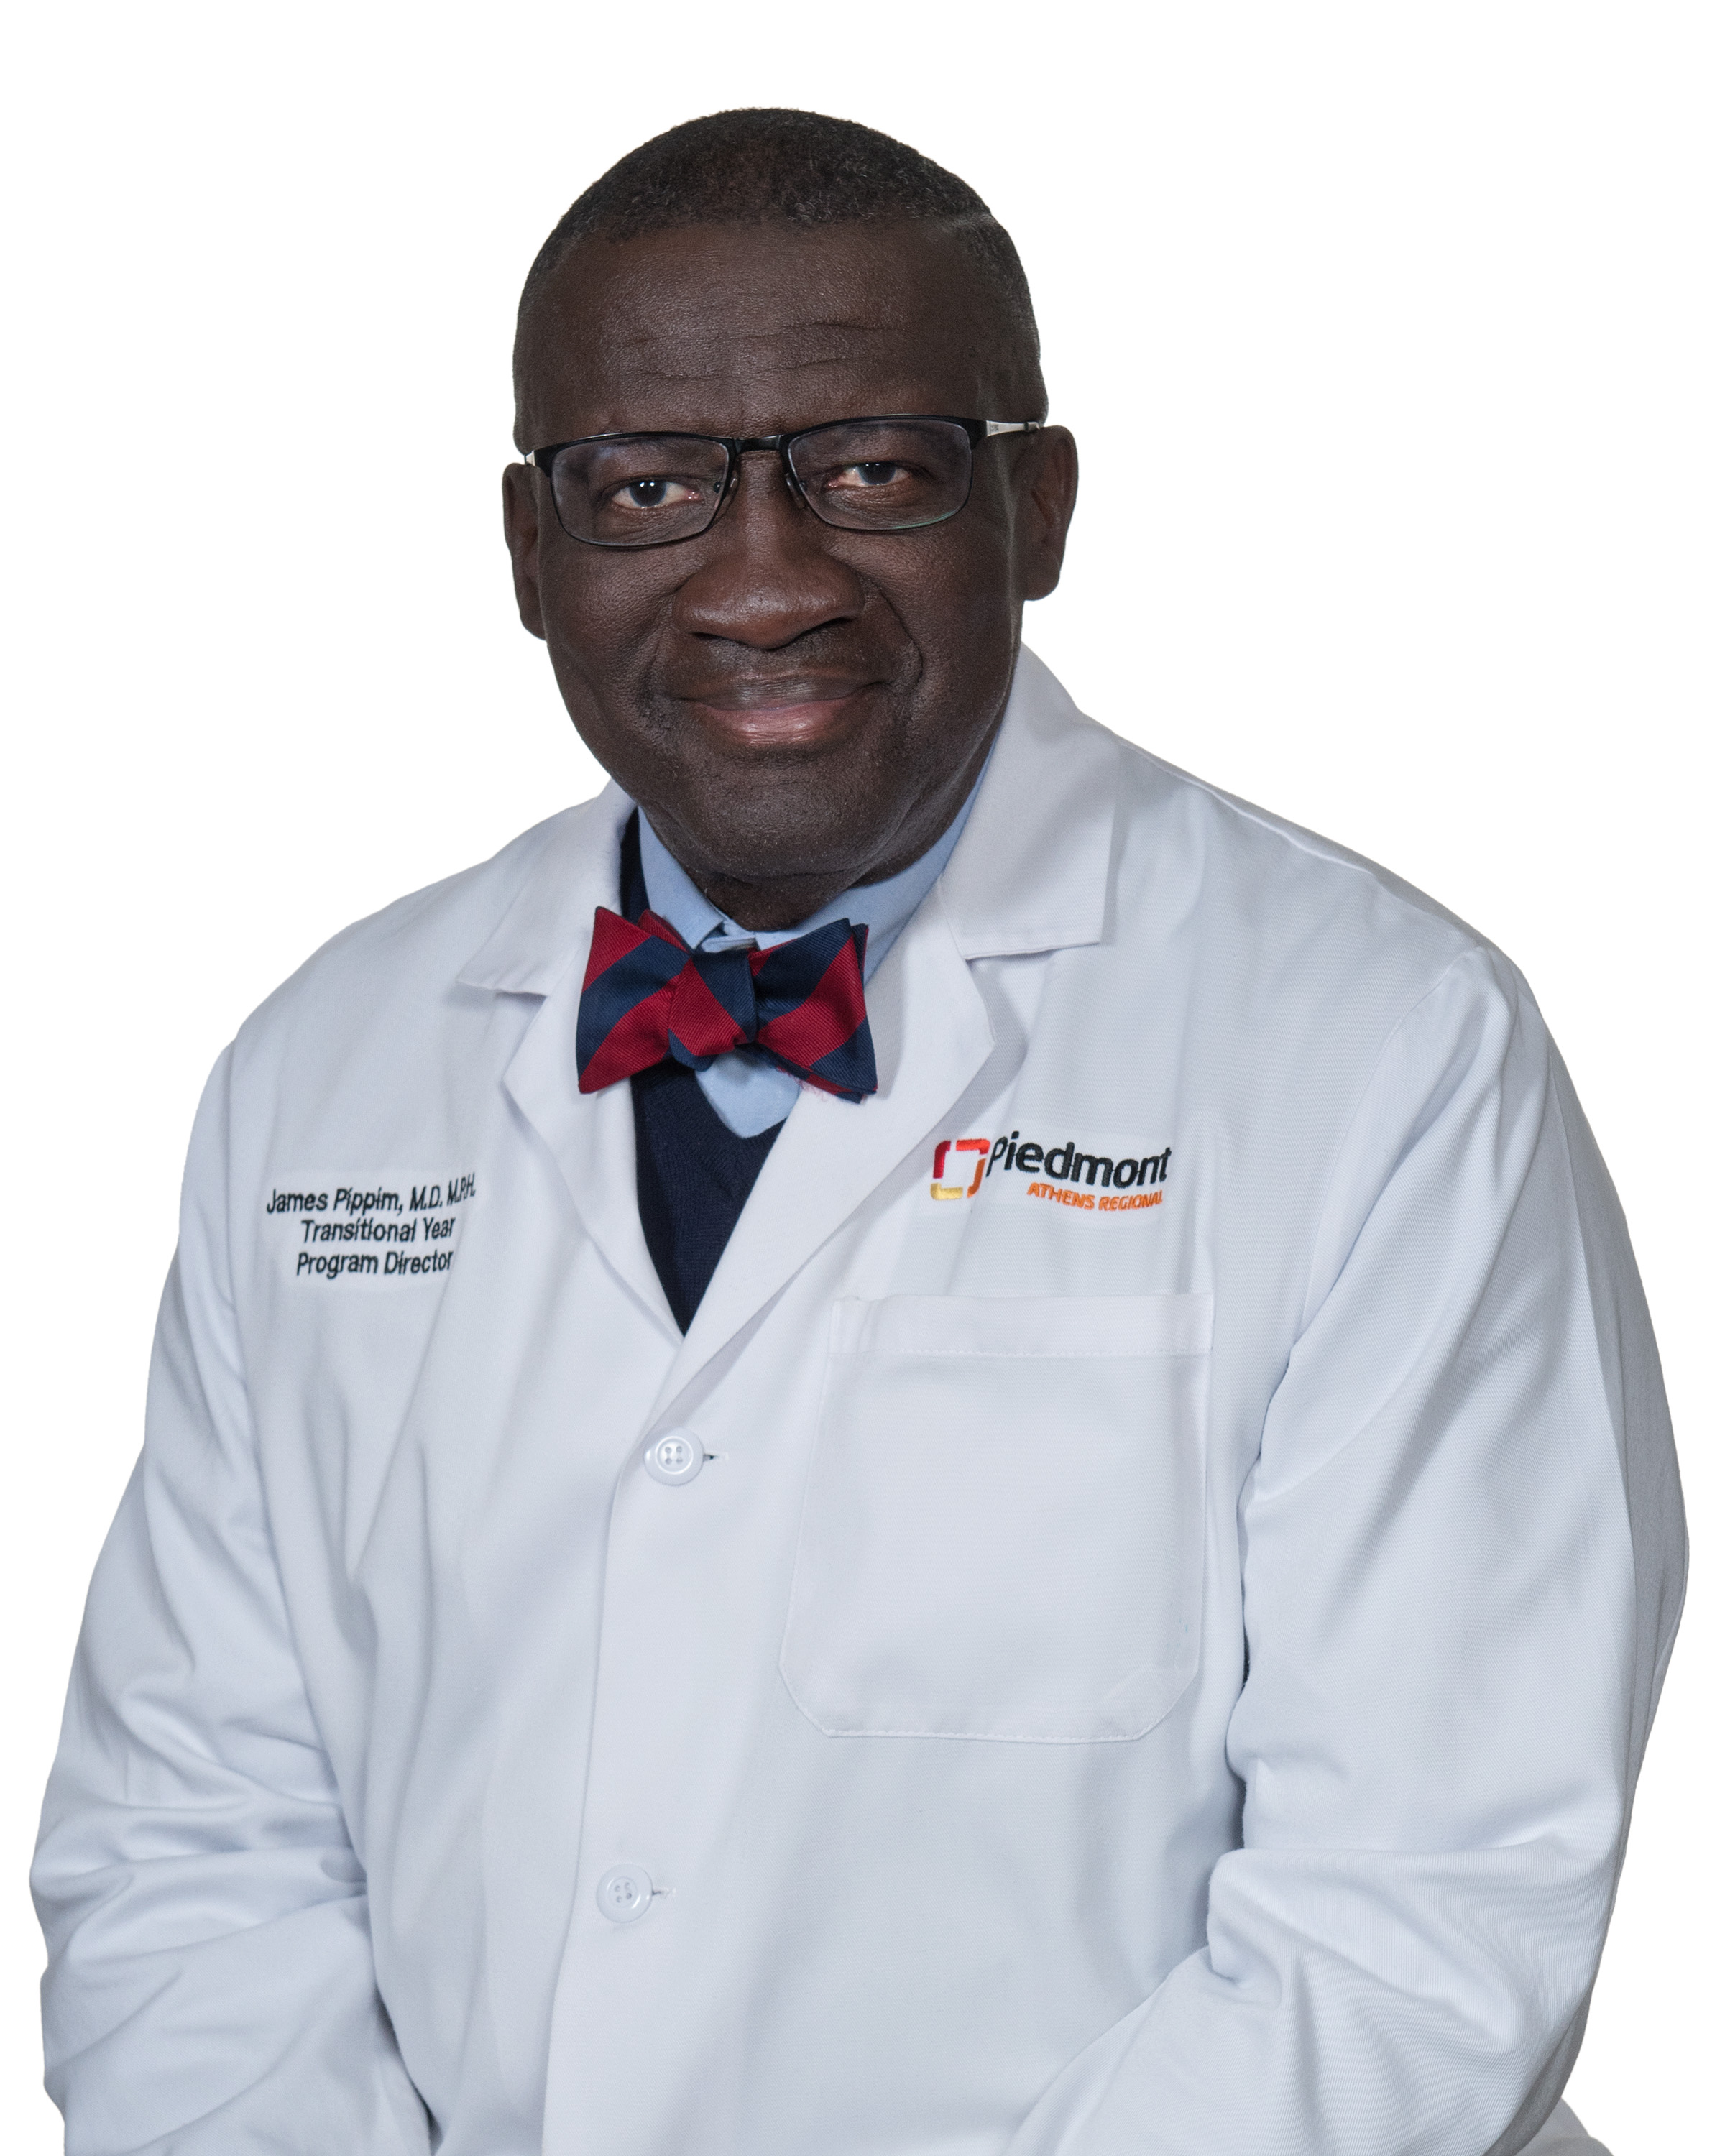 James Appiah-Pippim, MD, MPH, FACP, FCCP